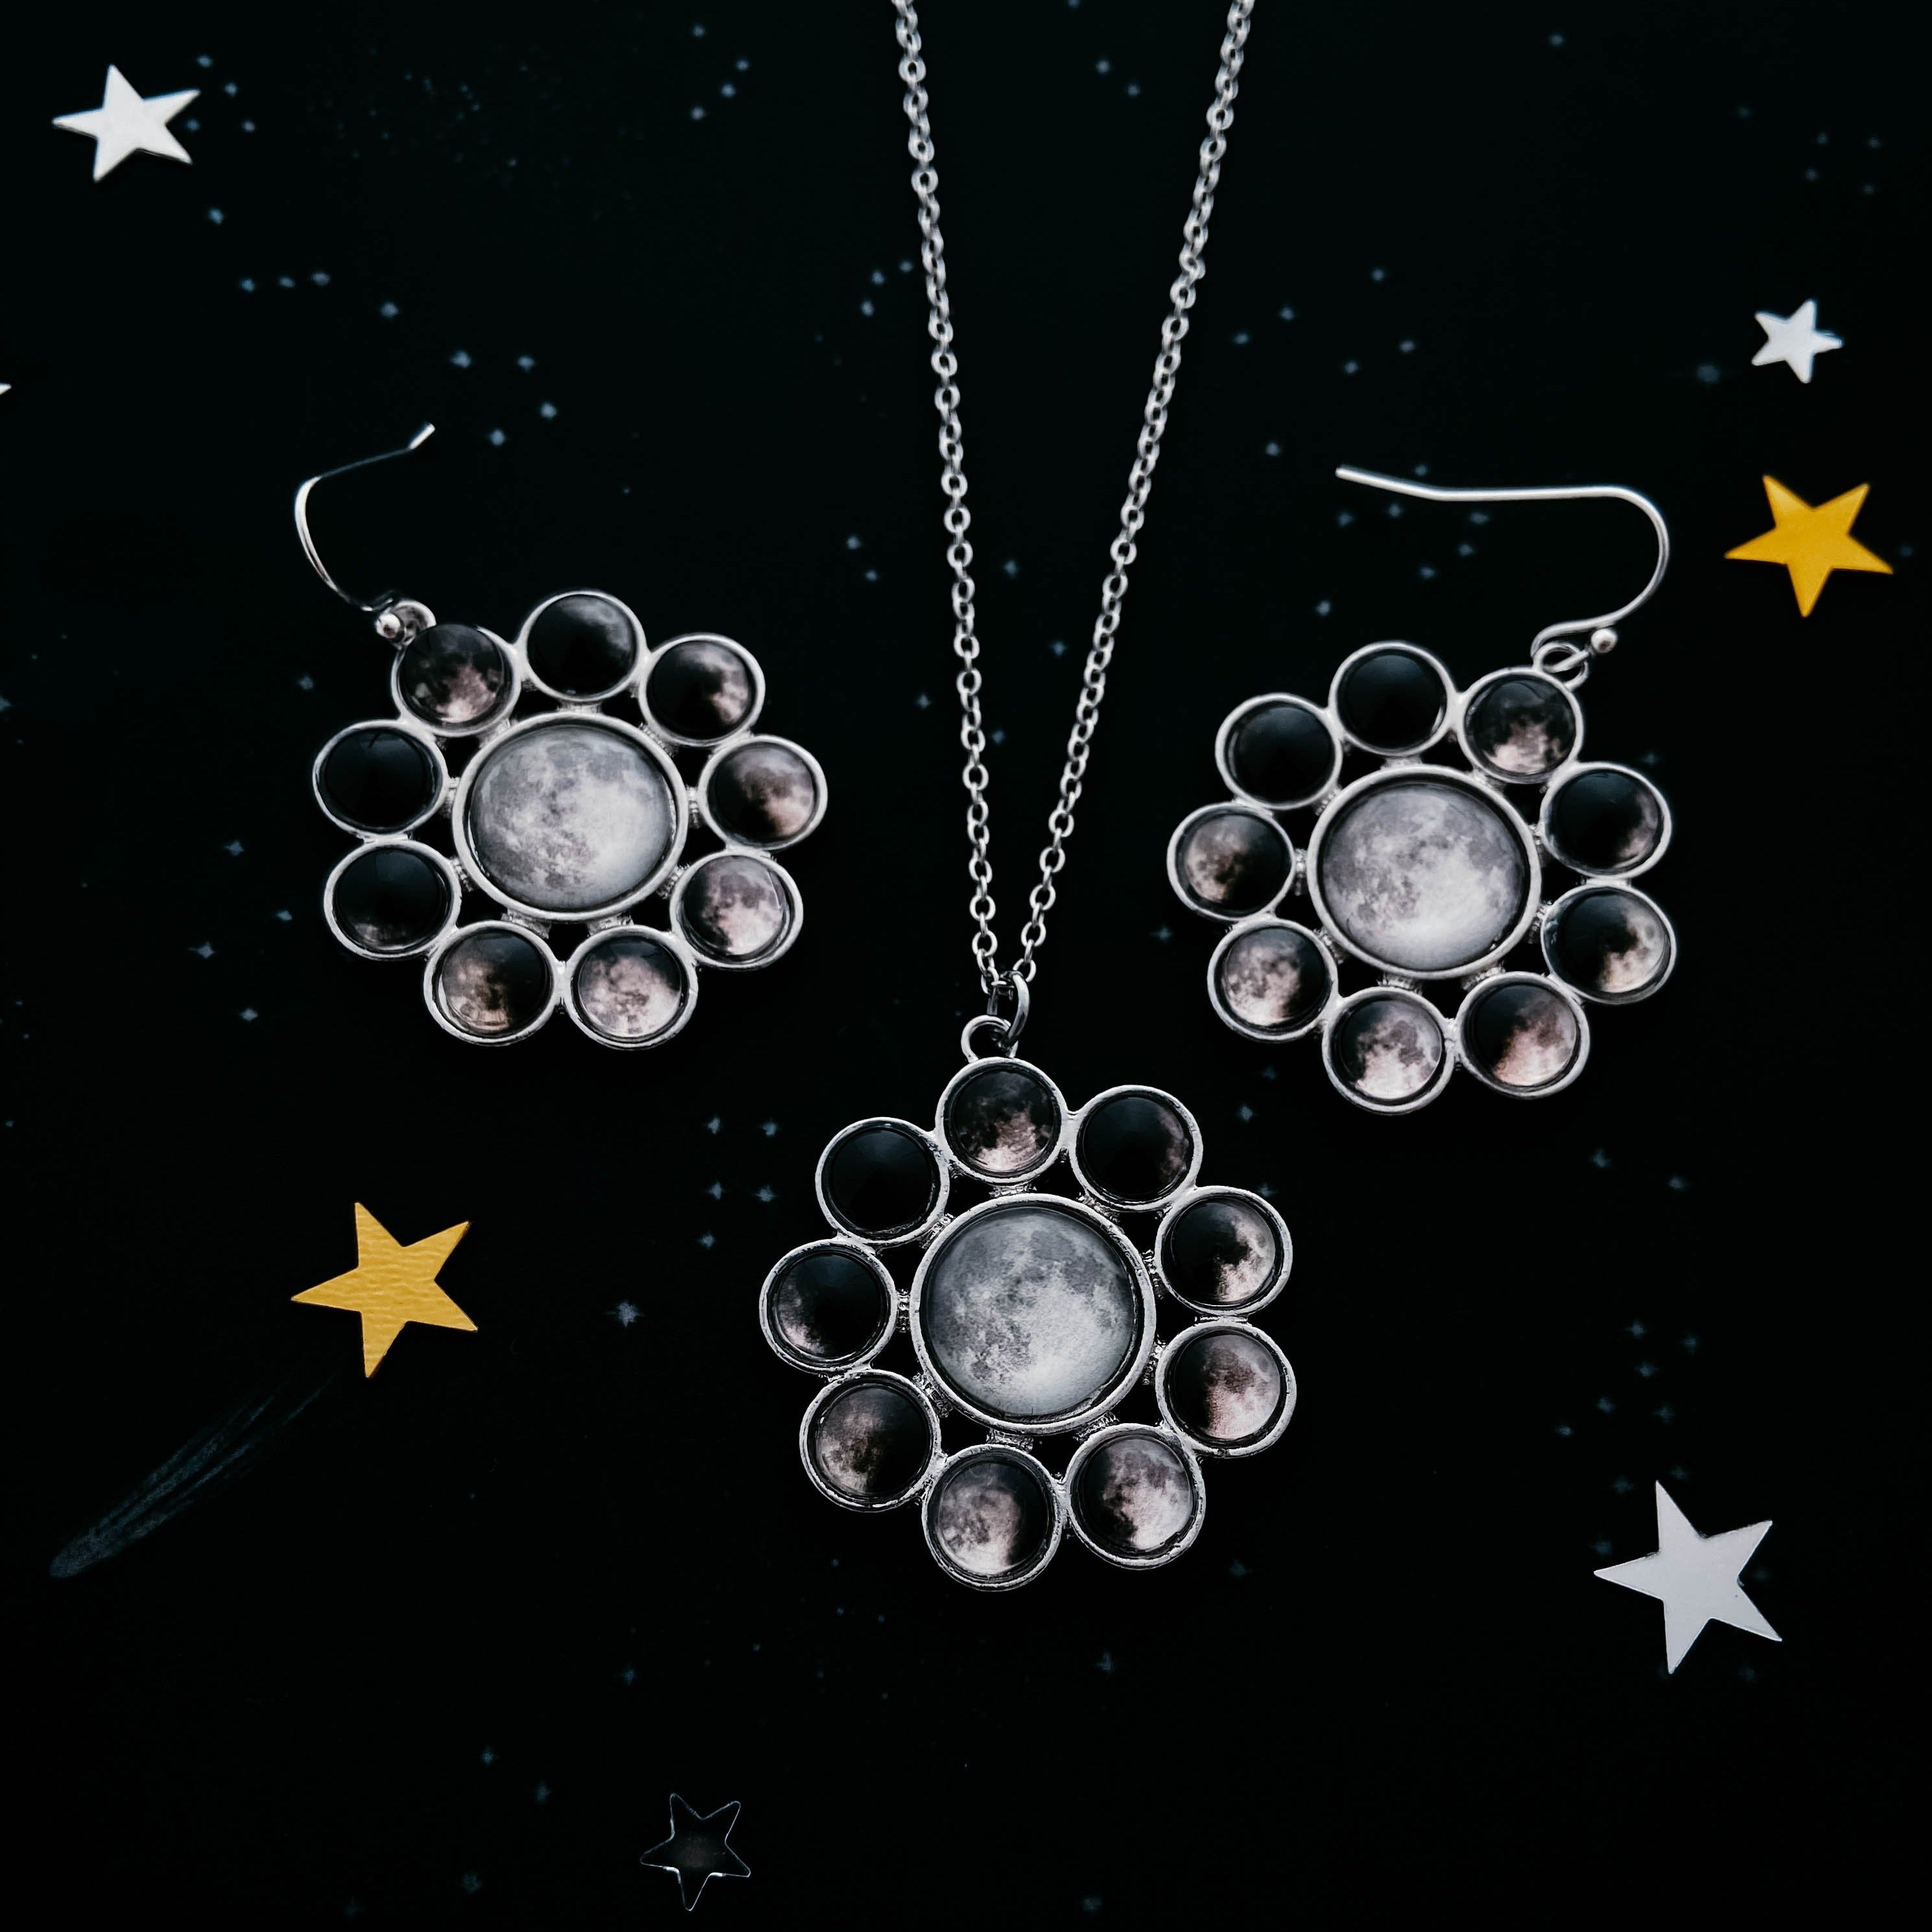 Halo style moon phase jewelry gift set - Full Moon celestial jewelry handcrafted by Yugen Tribe